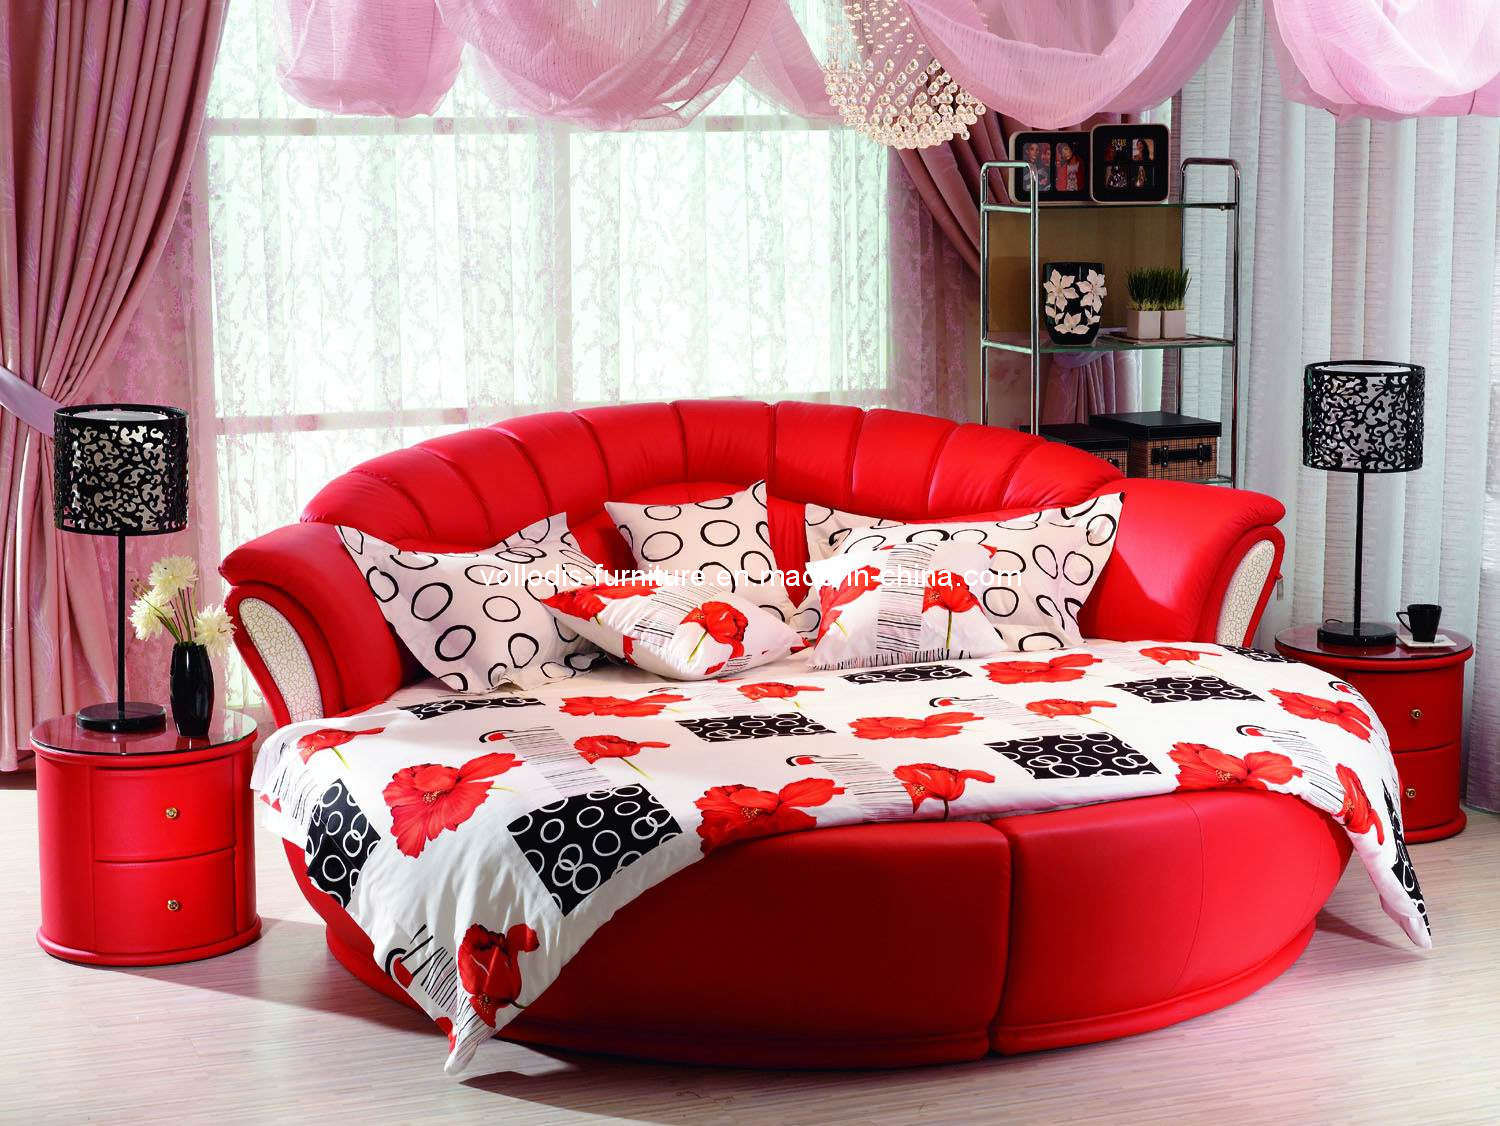 rainbow tz blog the bedroom modern round leather beds